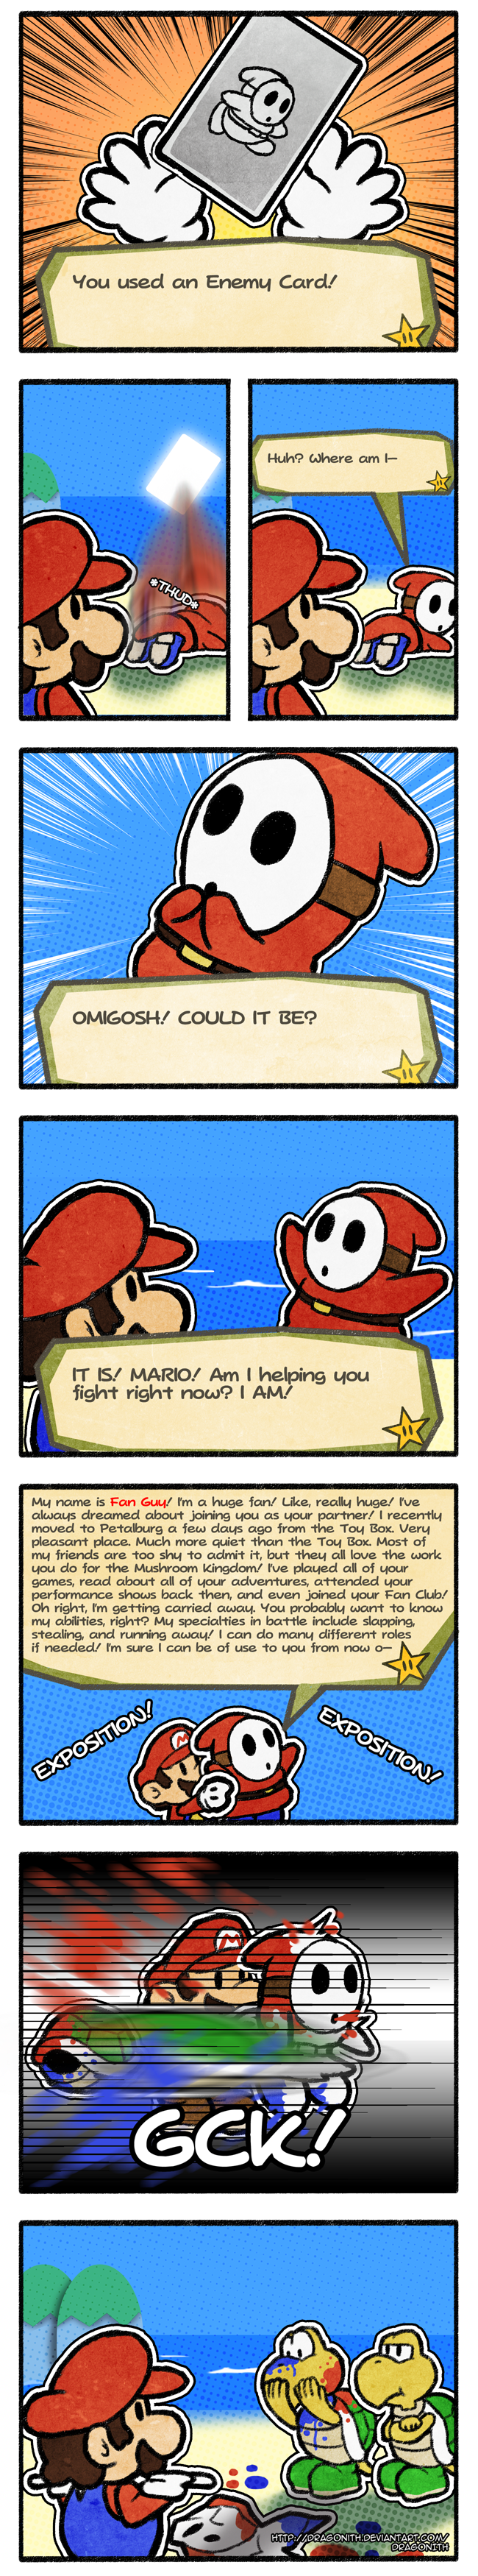 paper mario partners by dragonith on deviantart